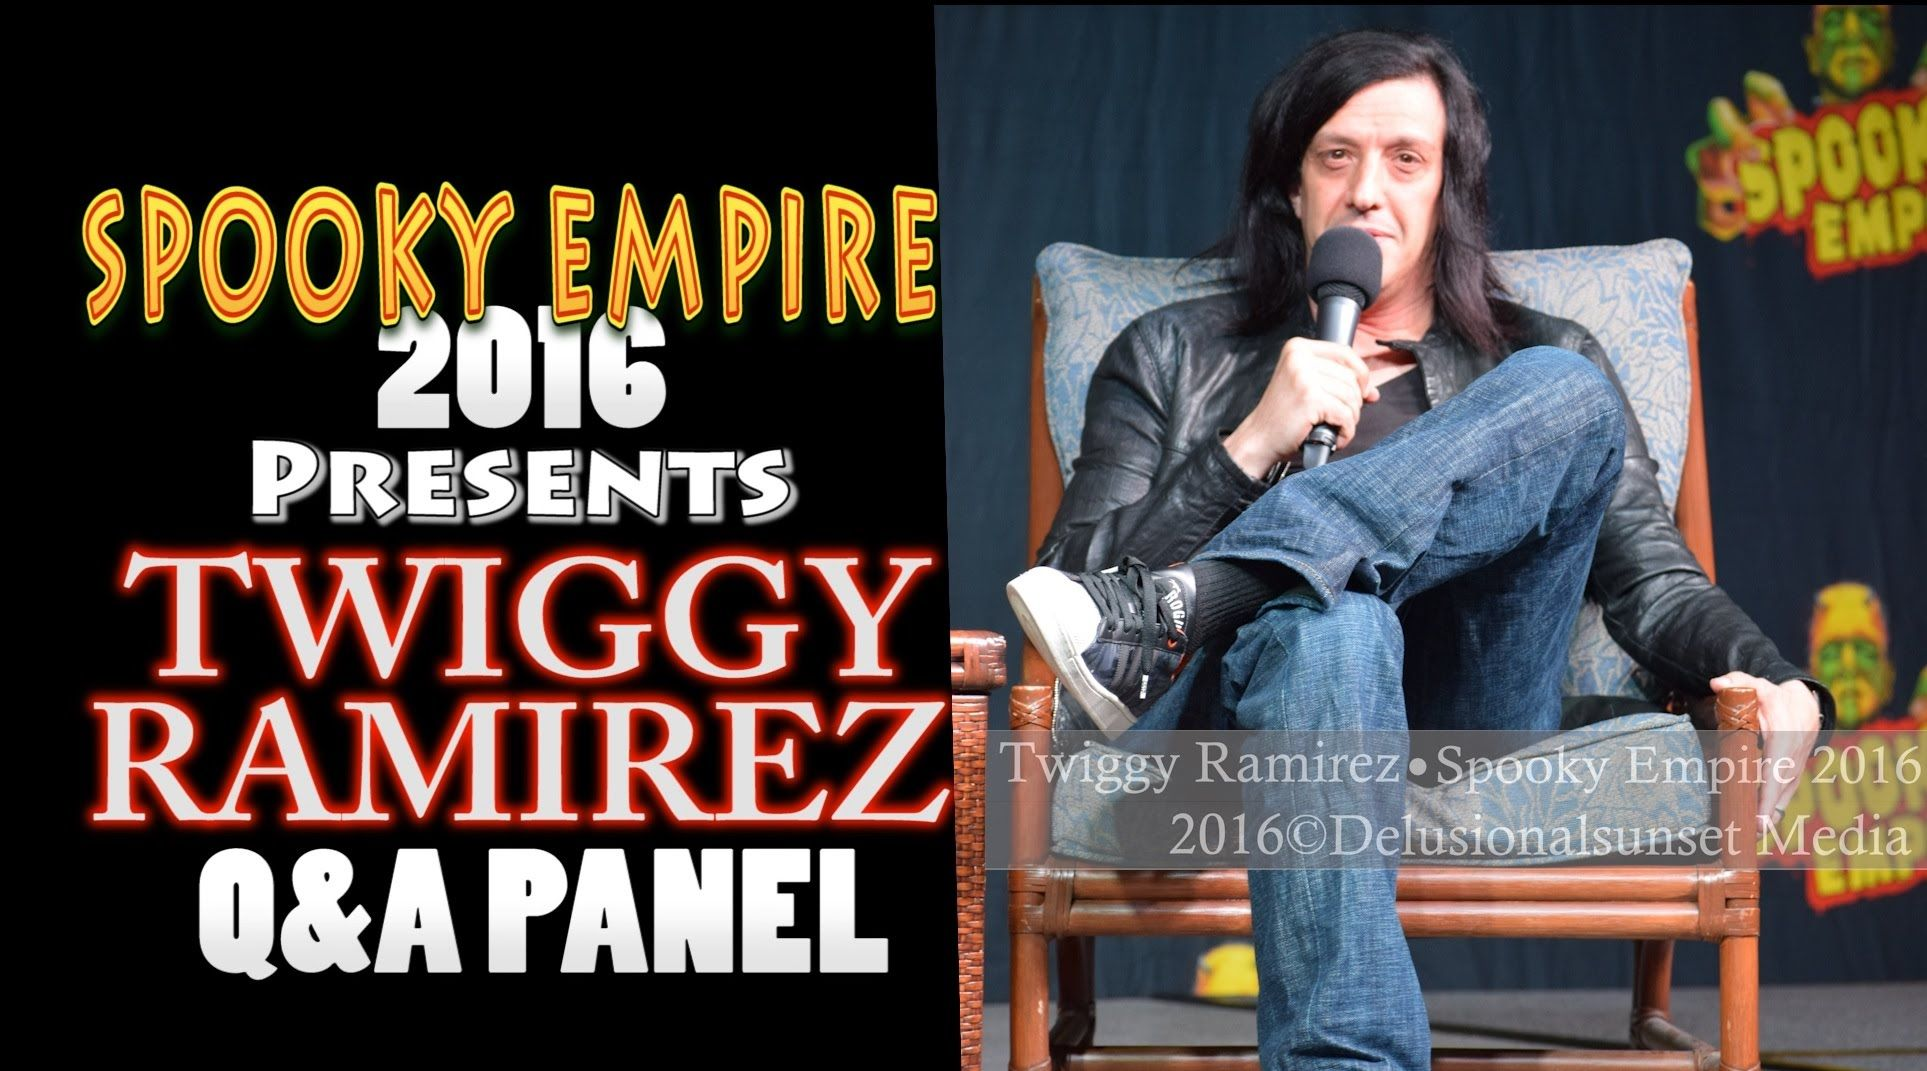 Spooky Empire 2016 ~Twiggy Ramirez (Marilyn Manson, Nine Inch Nails ...